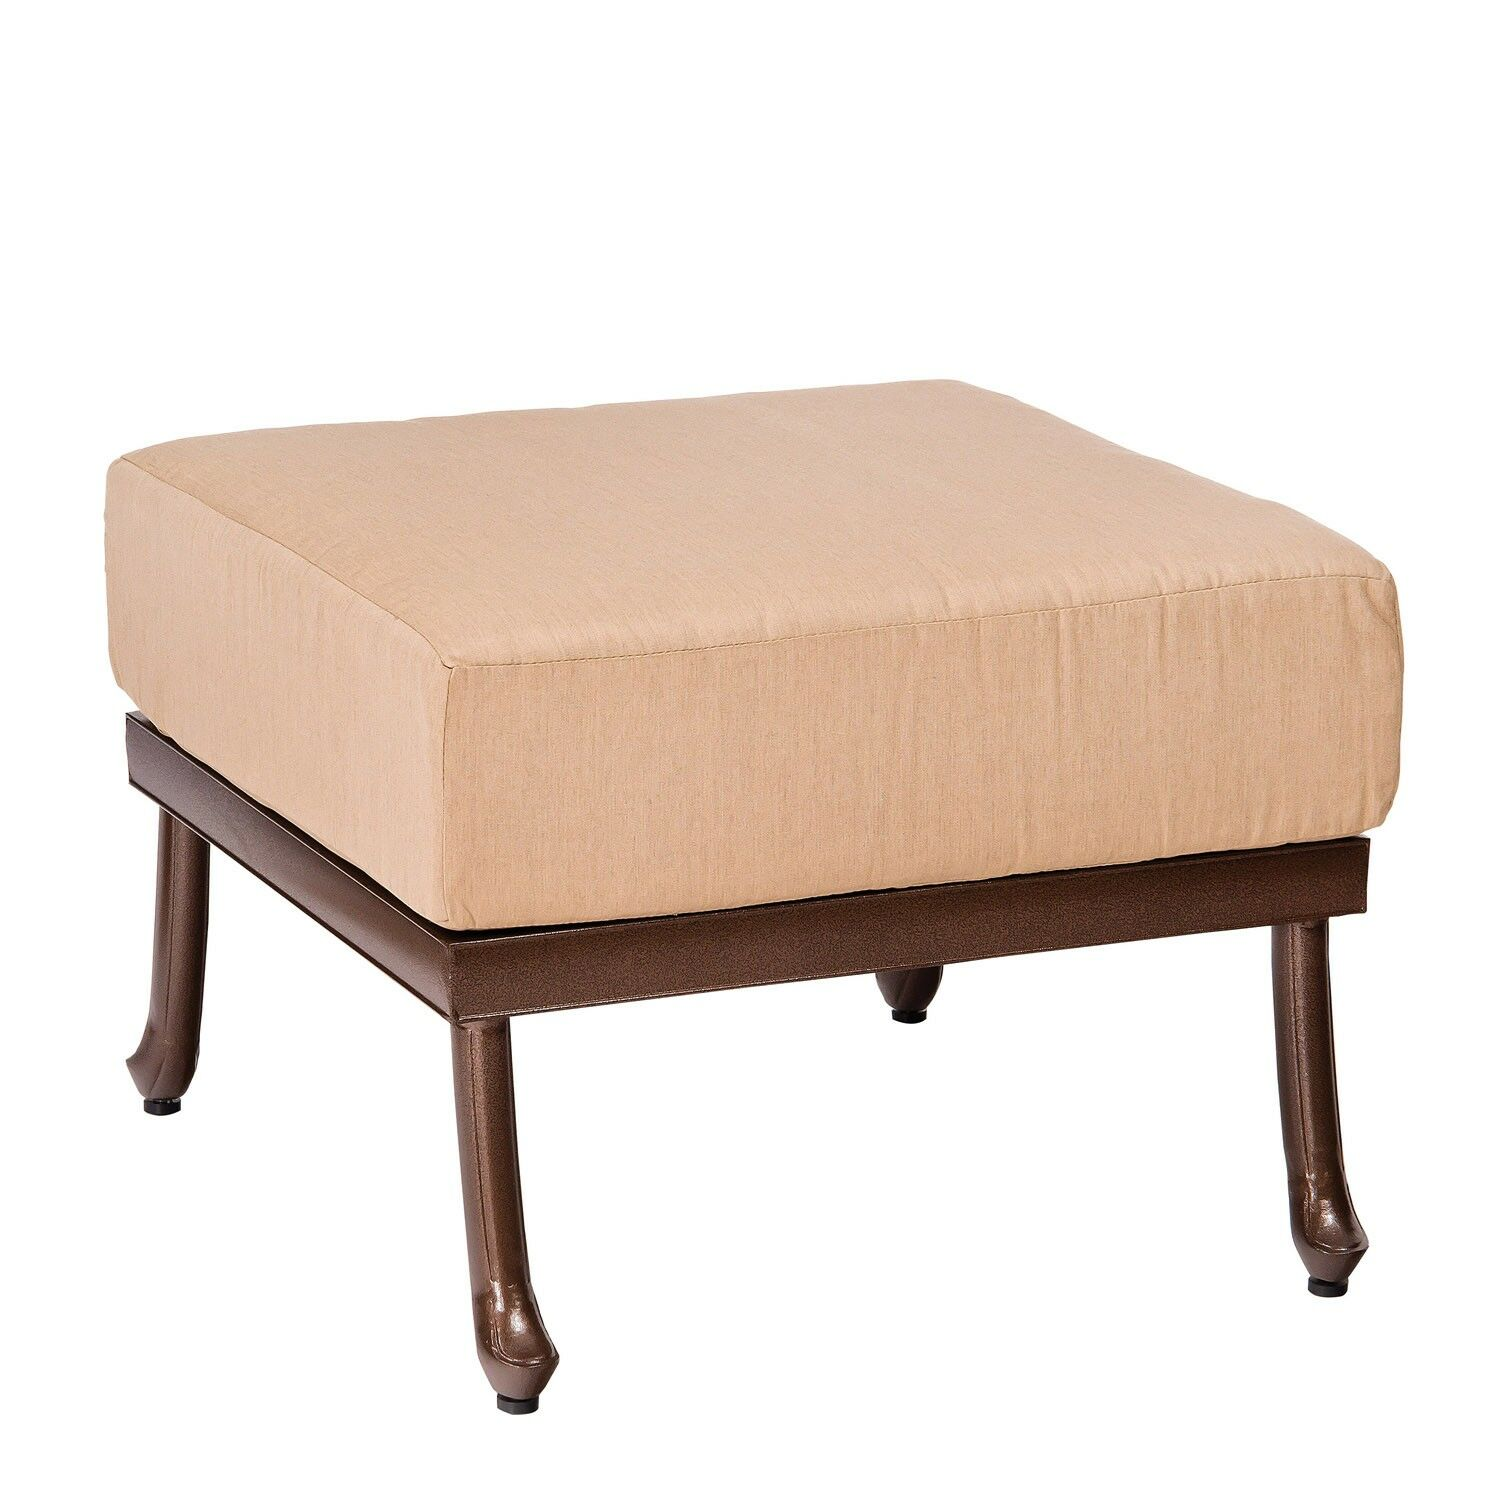 Casa Ottoman with Cushion Fabric: Fairmount